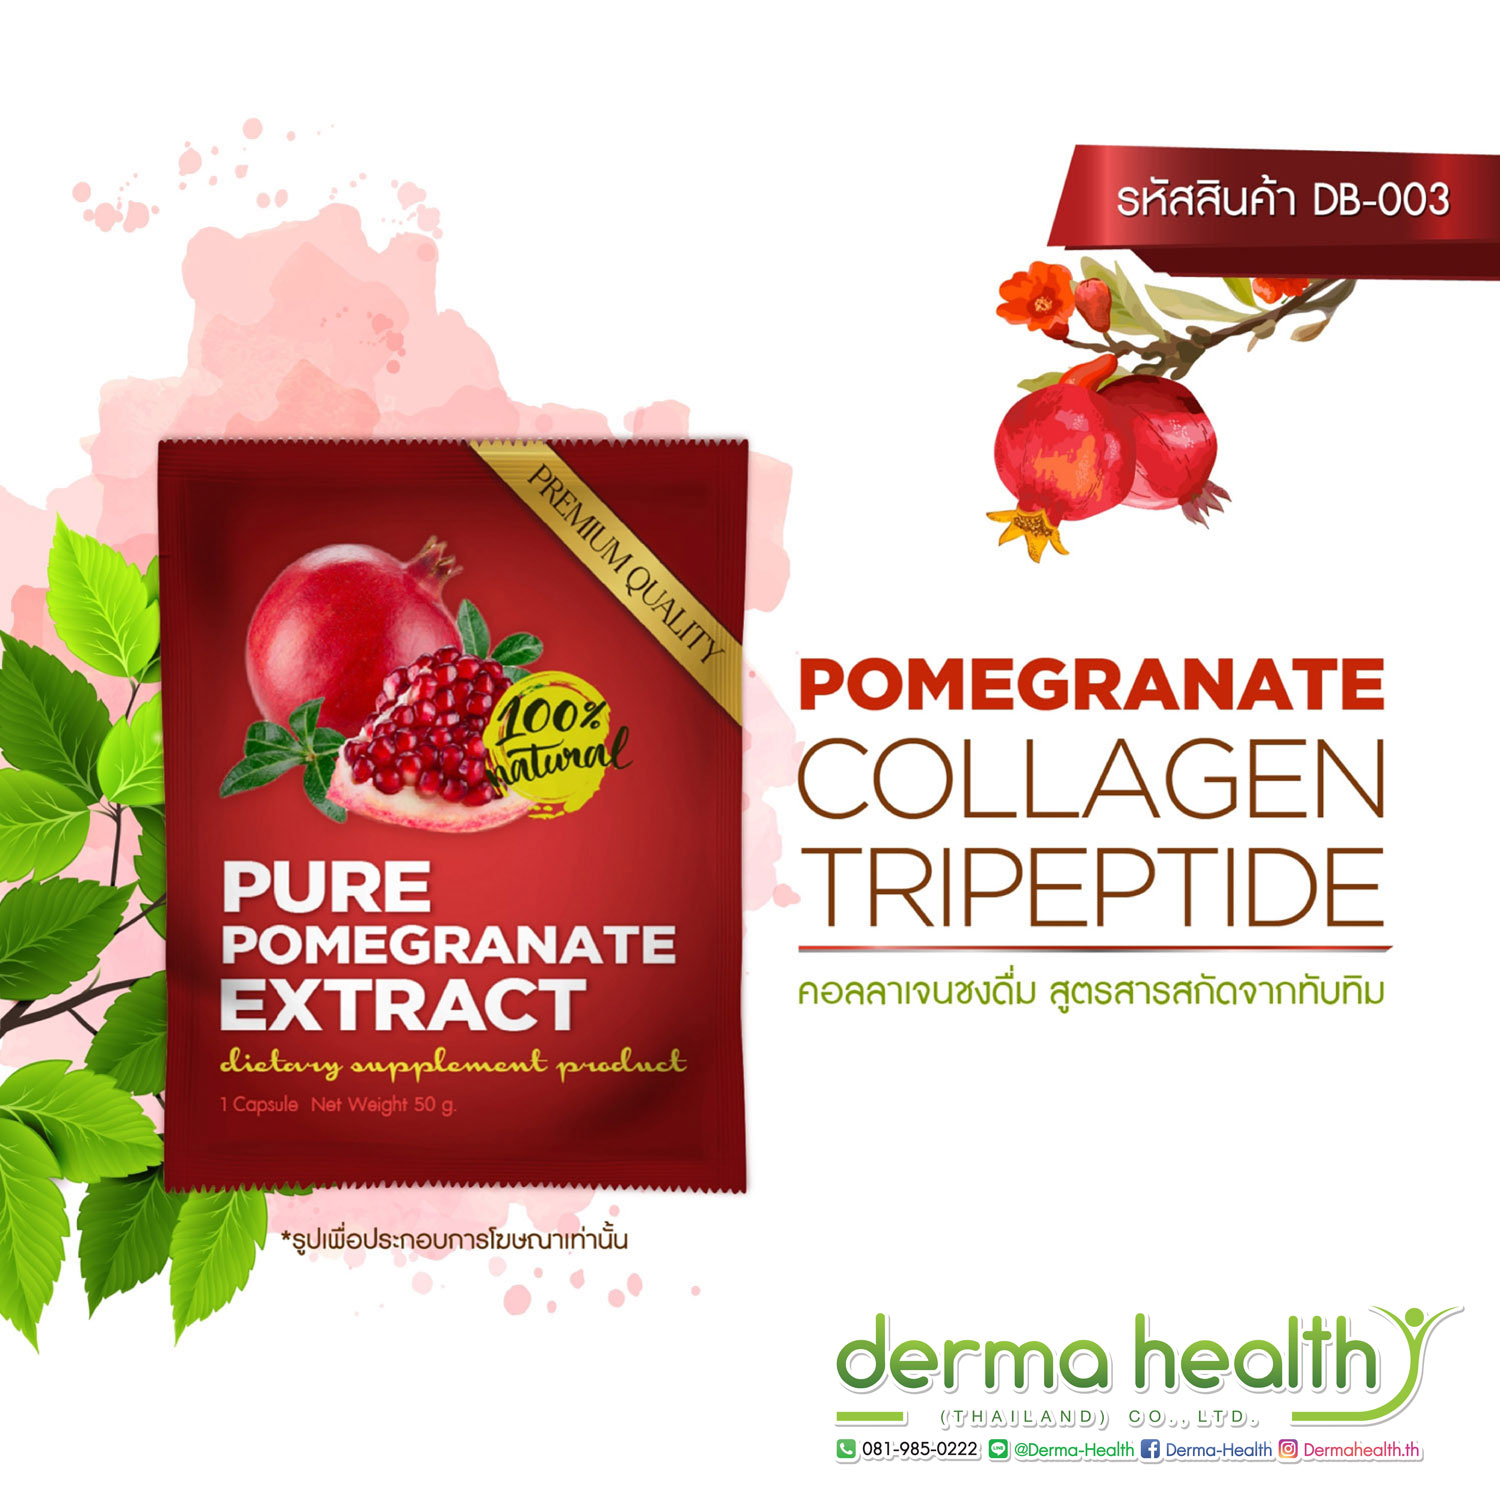 Pomegranate Collagen Tripeptide